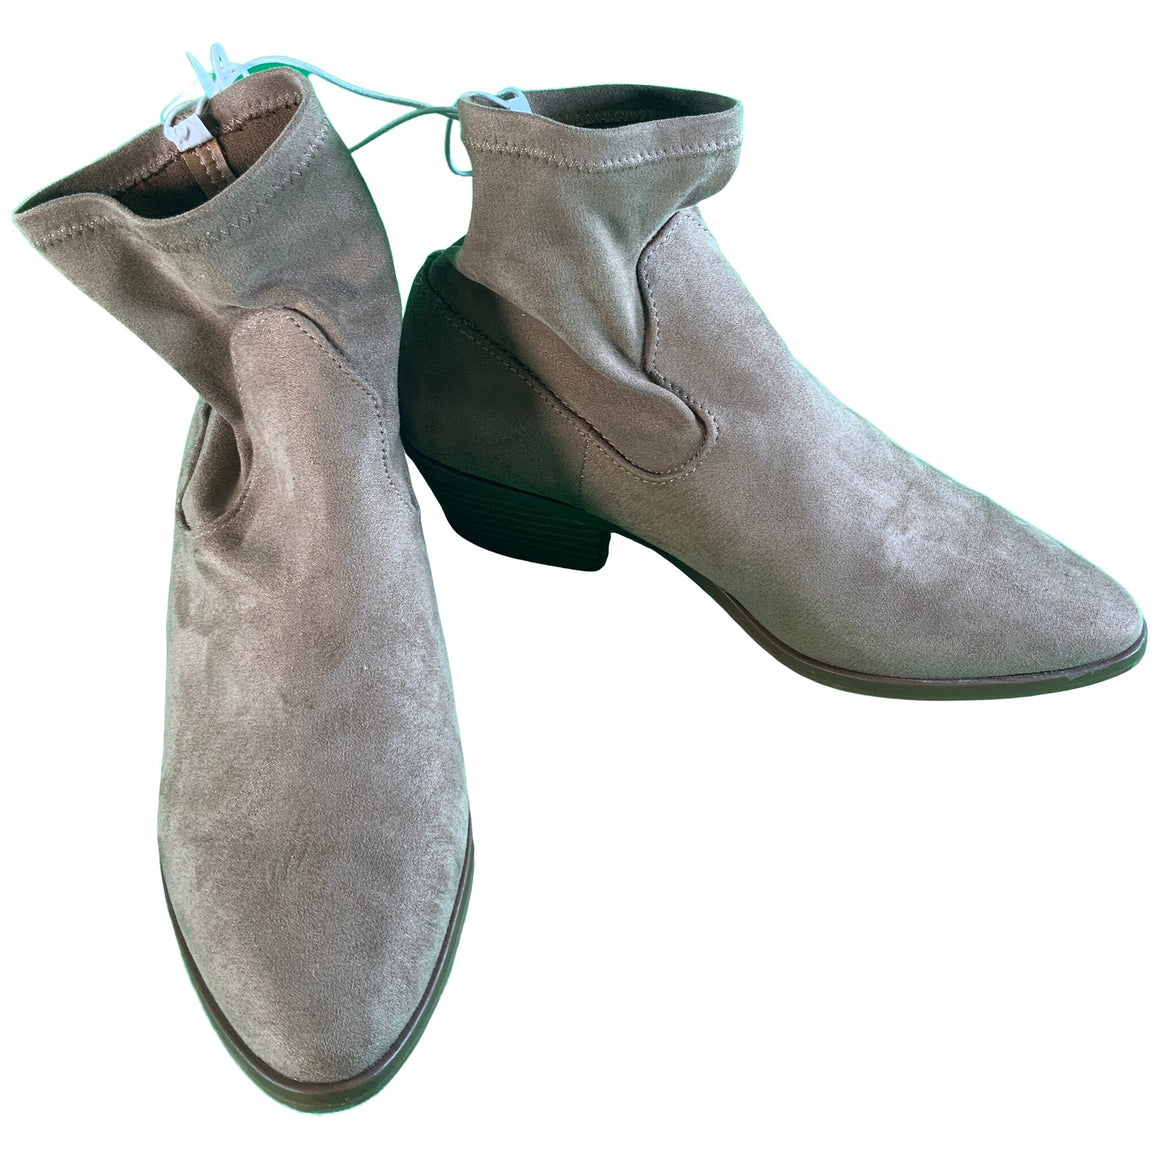 Loraine Western Sock Booties - Tan 7.5 - Universal Thread